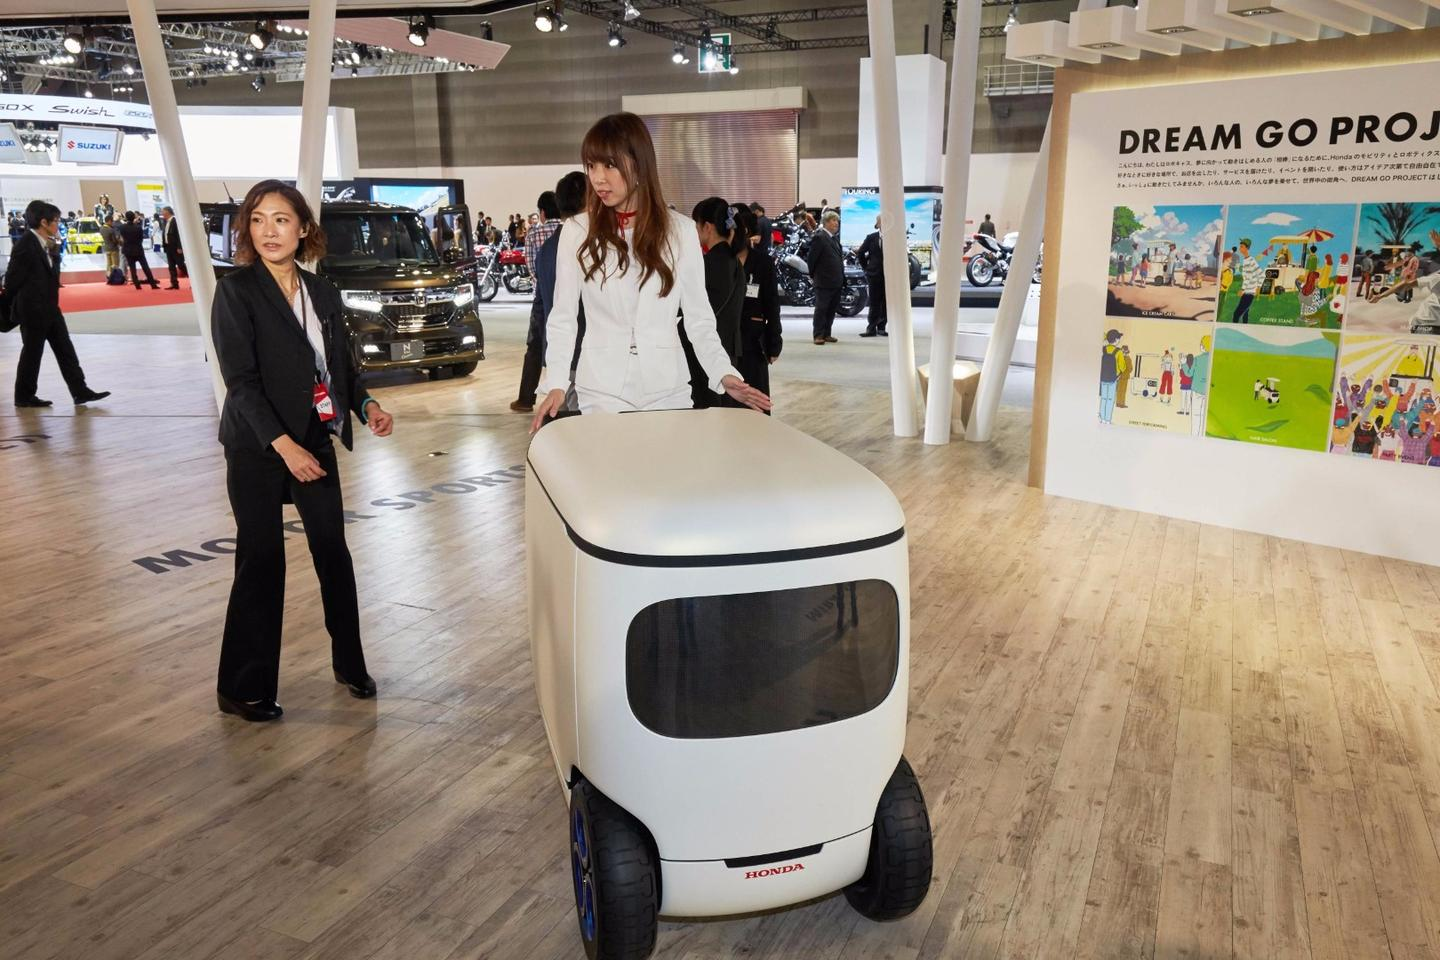 An odd twist on urban transport, Honda's RoboCas is a robot, auto-followcargo trailer, urban transporter and vending stand all in one